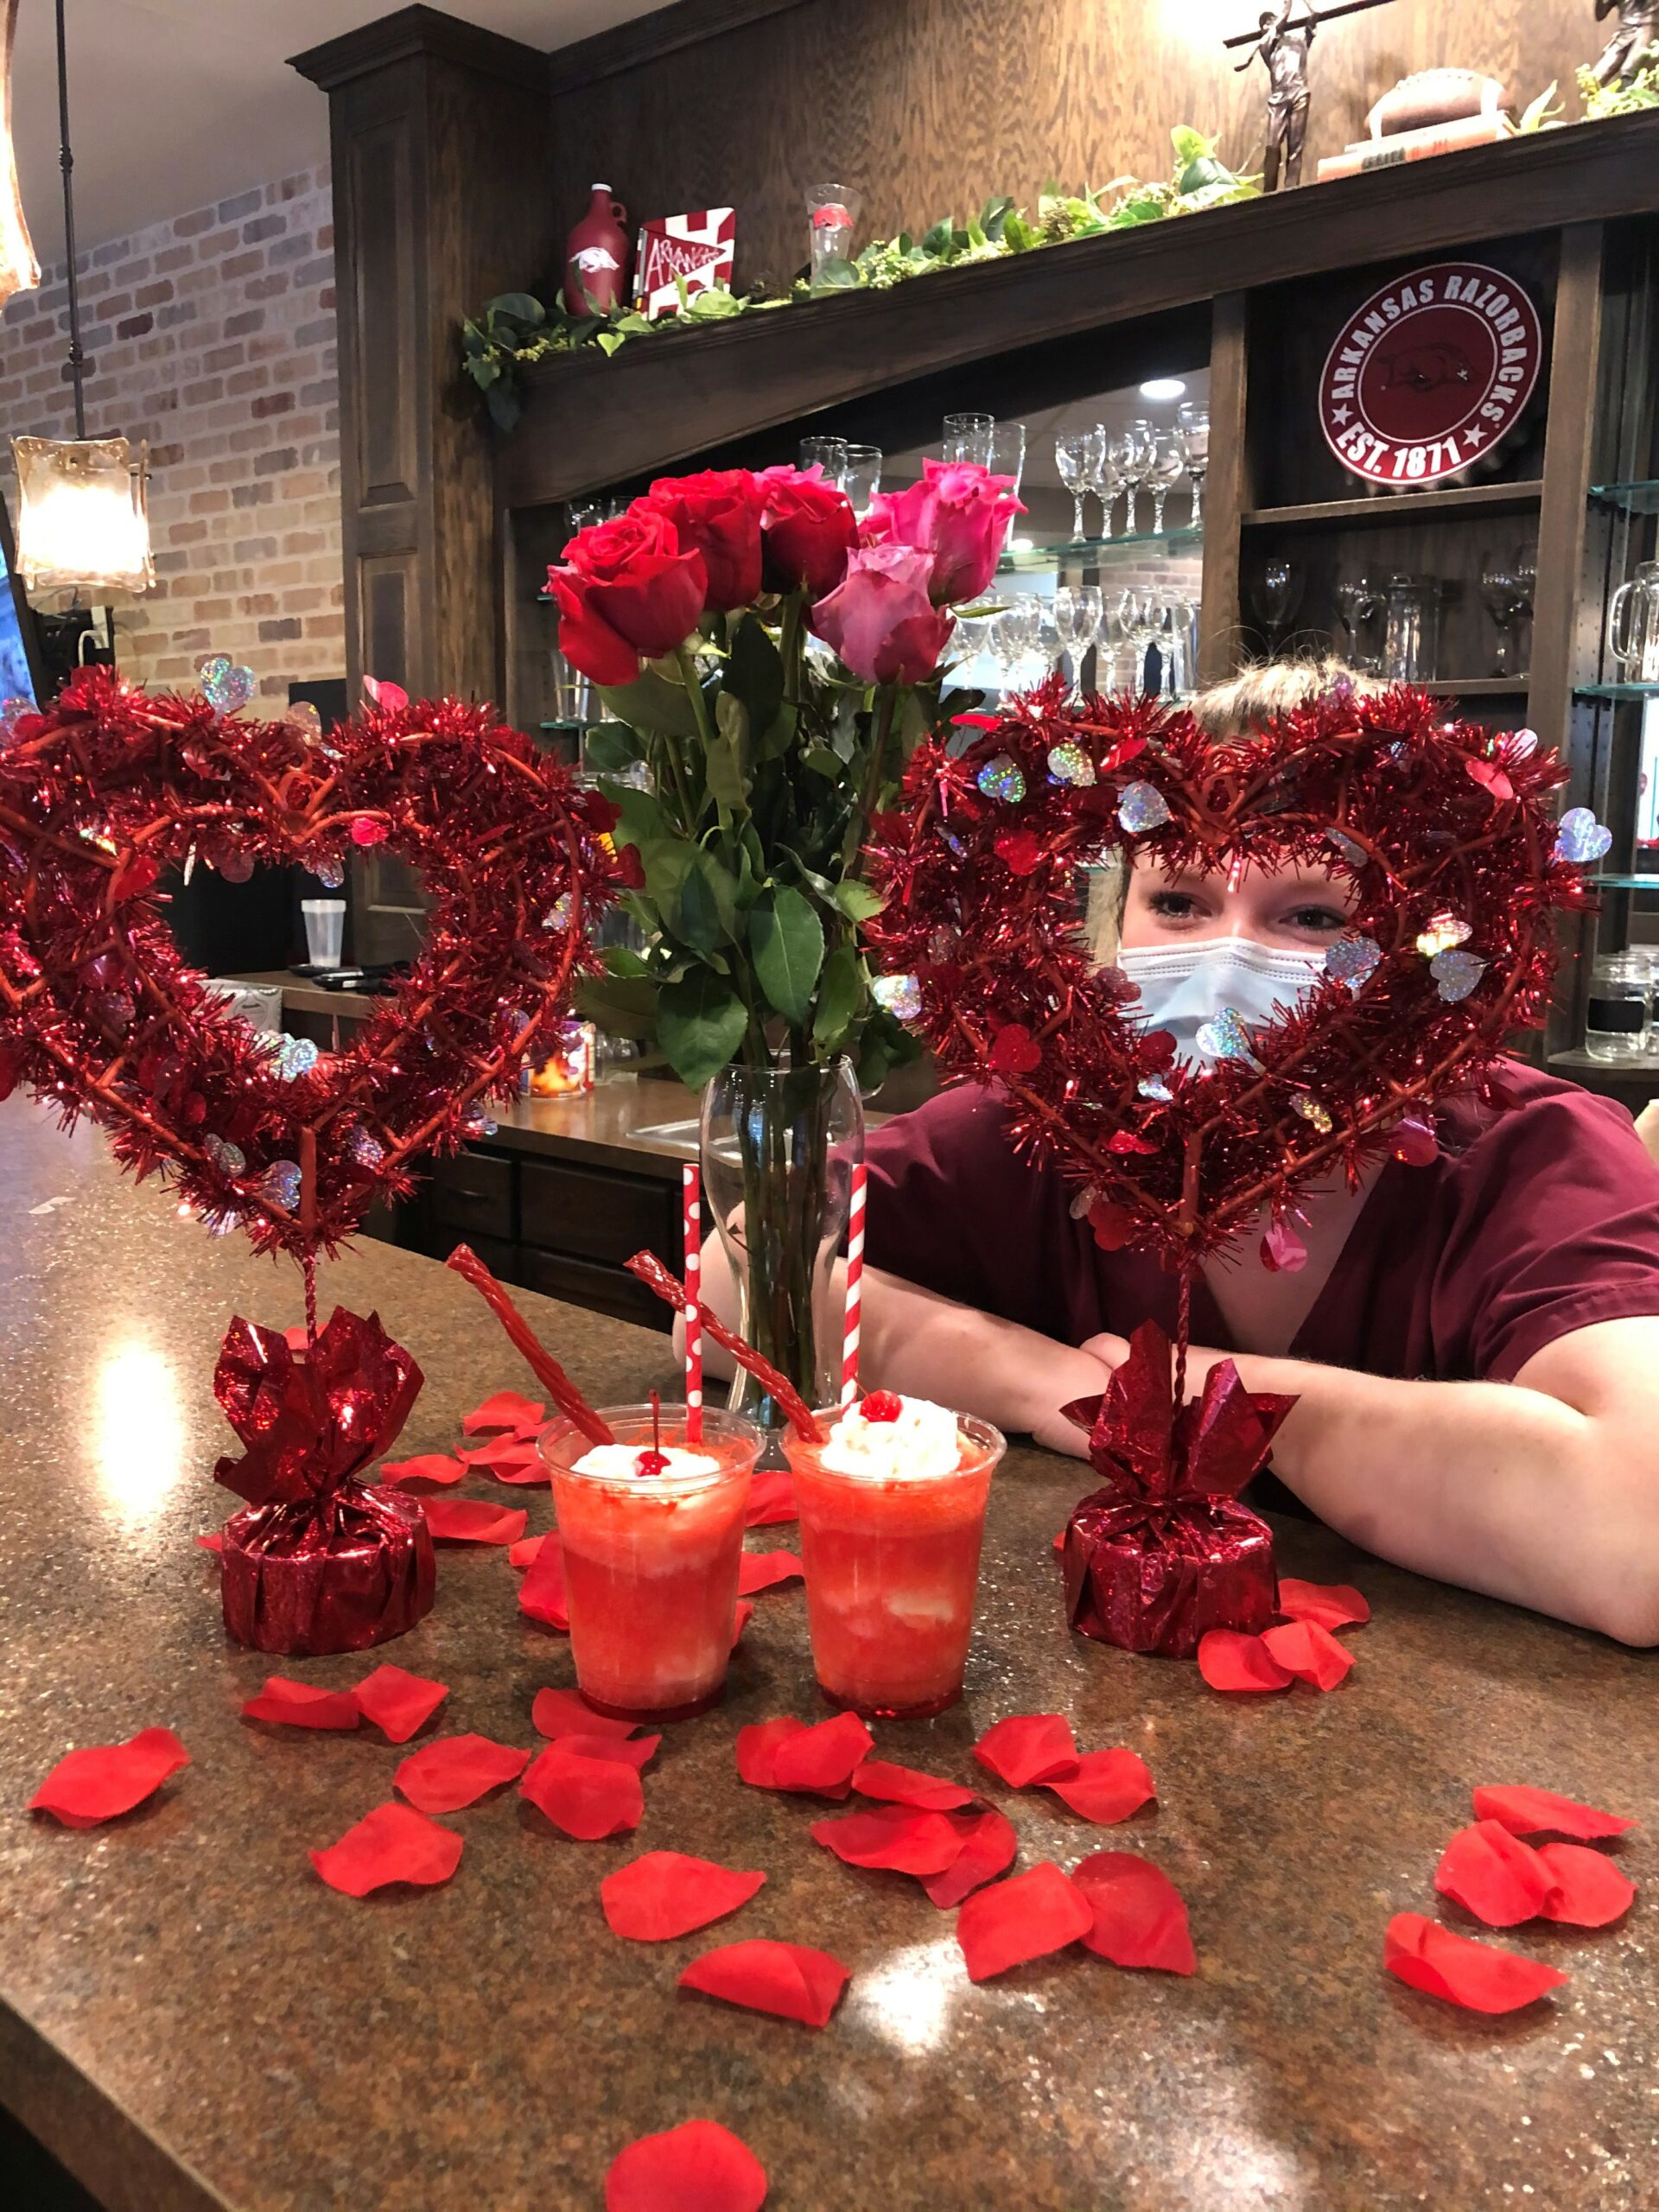 Valentines Day VIP Lunch- Our lovely Primrose CNAS handed out Sweetheart Shakes, Roses, and Homemade Valentines they made to our Primrose residents on Valentines Day!